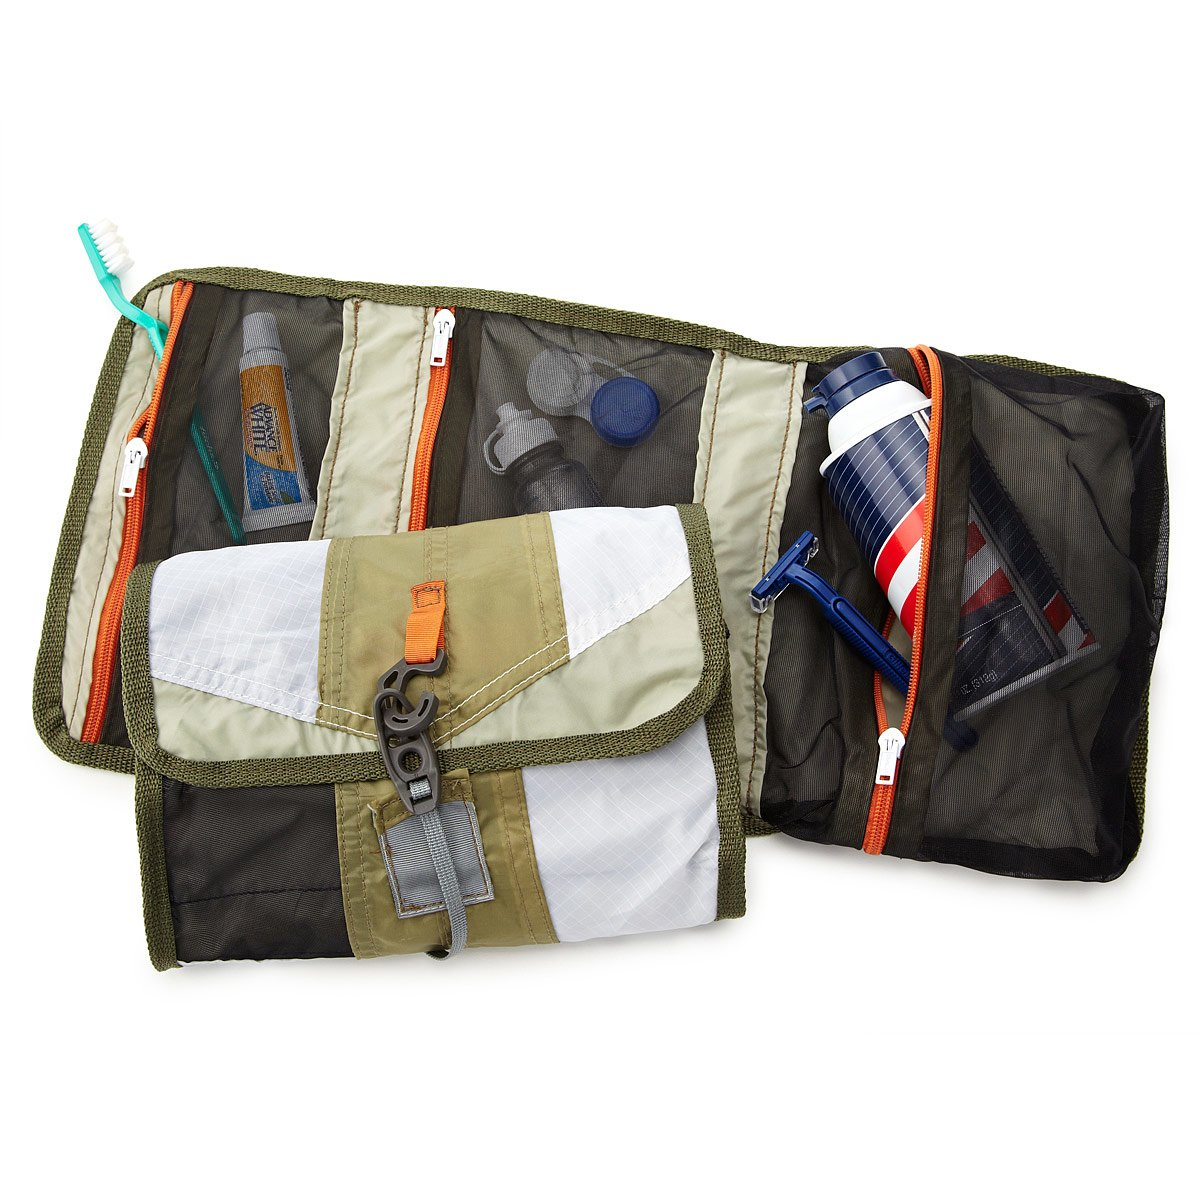 Upcycled Tent Dopp Kit 1 thumbnail. Upcycled Tent Dopp Kit   mens toiletry bag   UncommonGoods